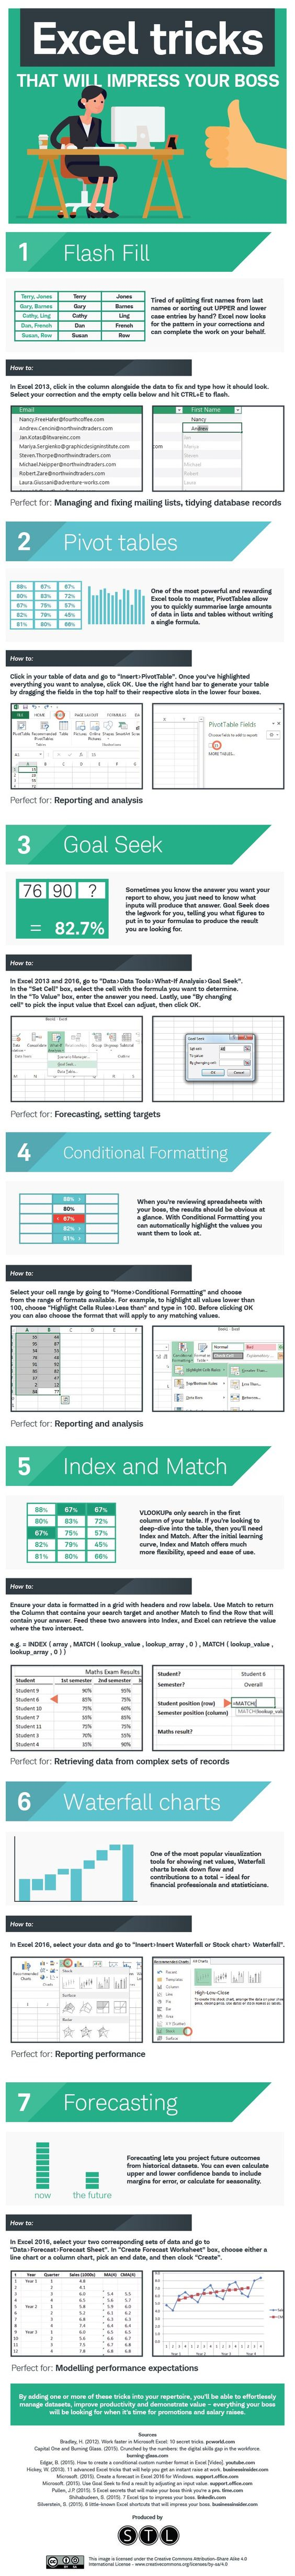 Pinterest Infographic: Excel Tricks